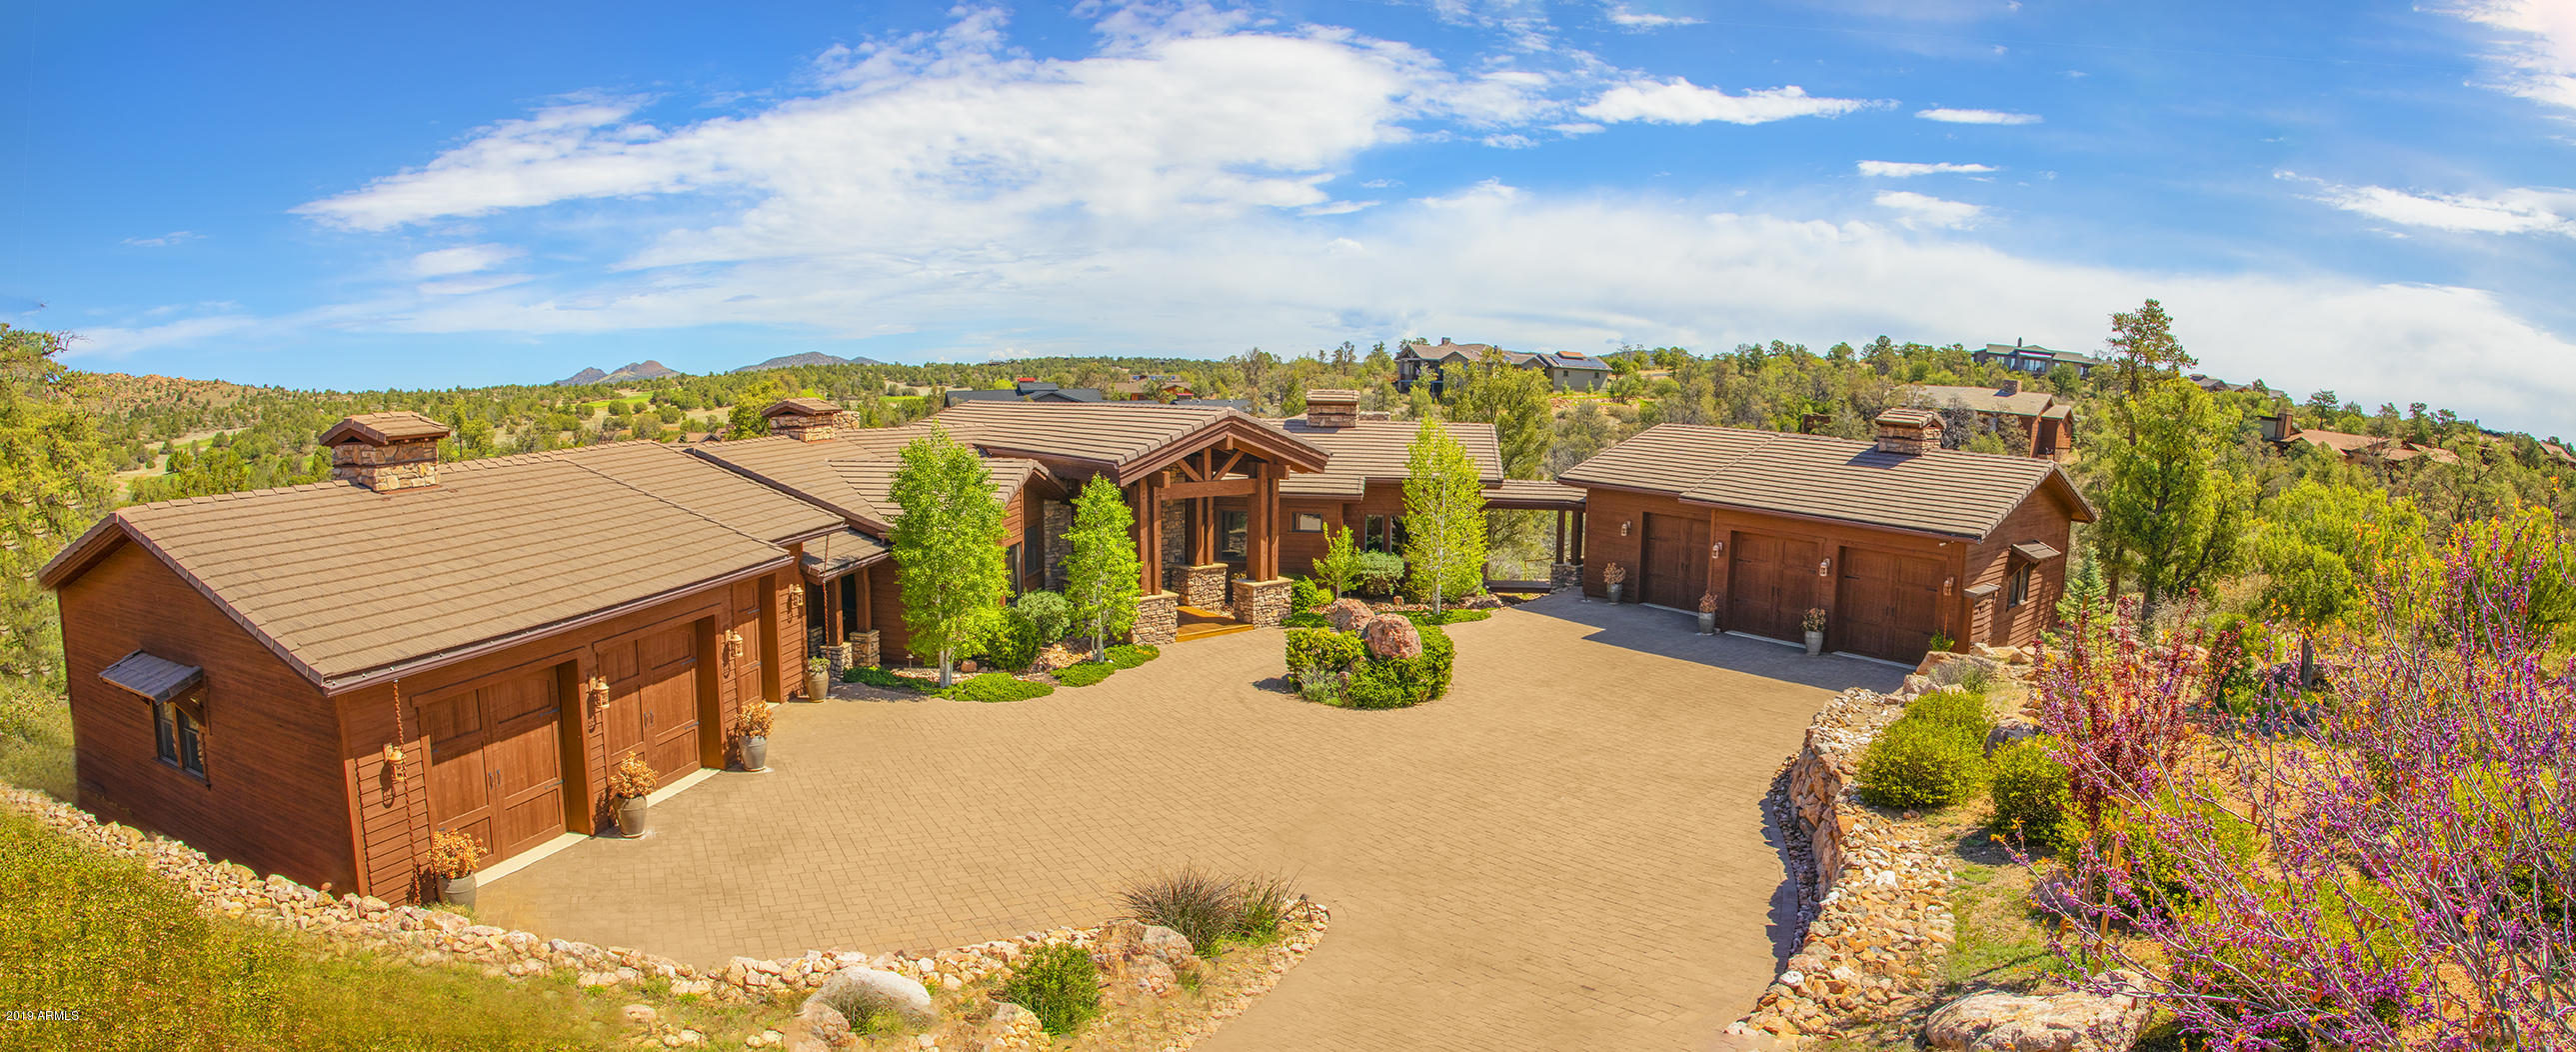 Photo of 15175 N Four Mile Creek Lane, Prescott, AZ 86305